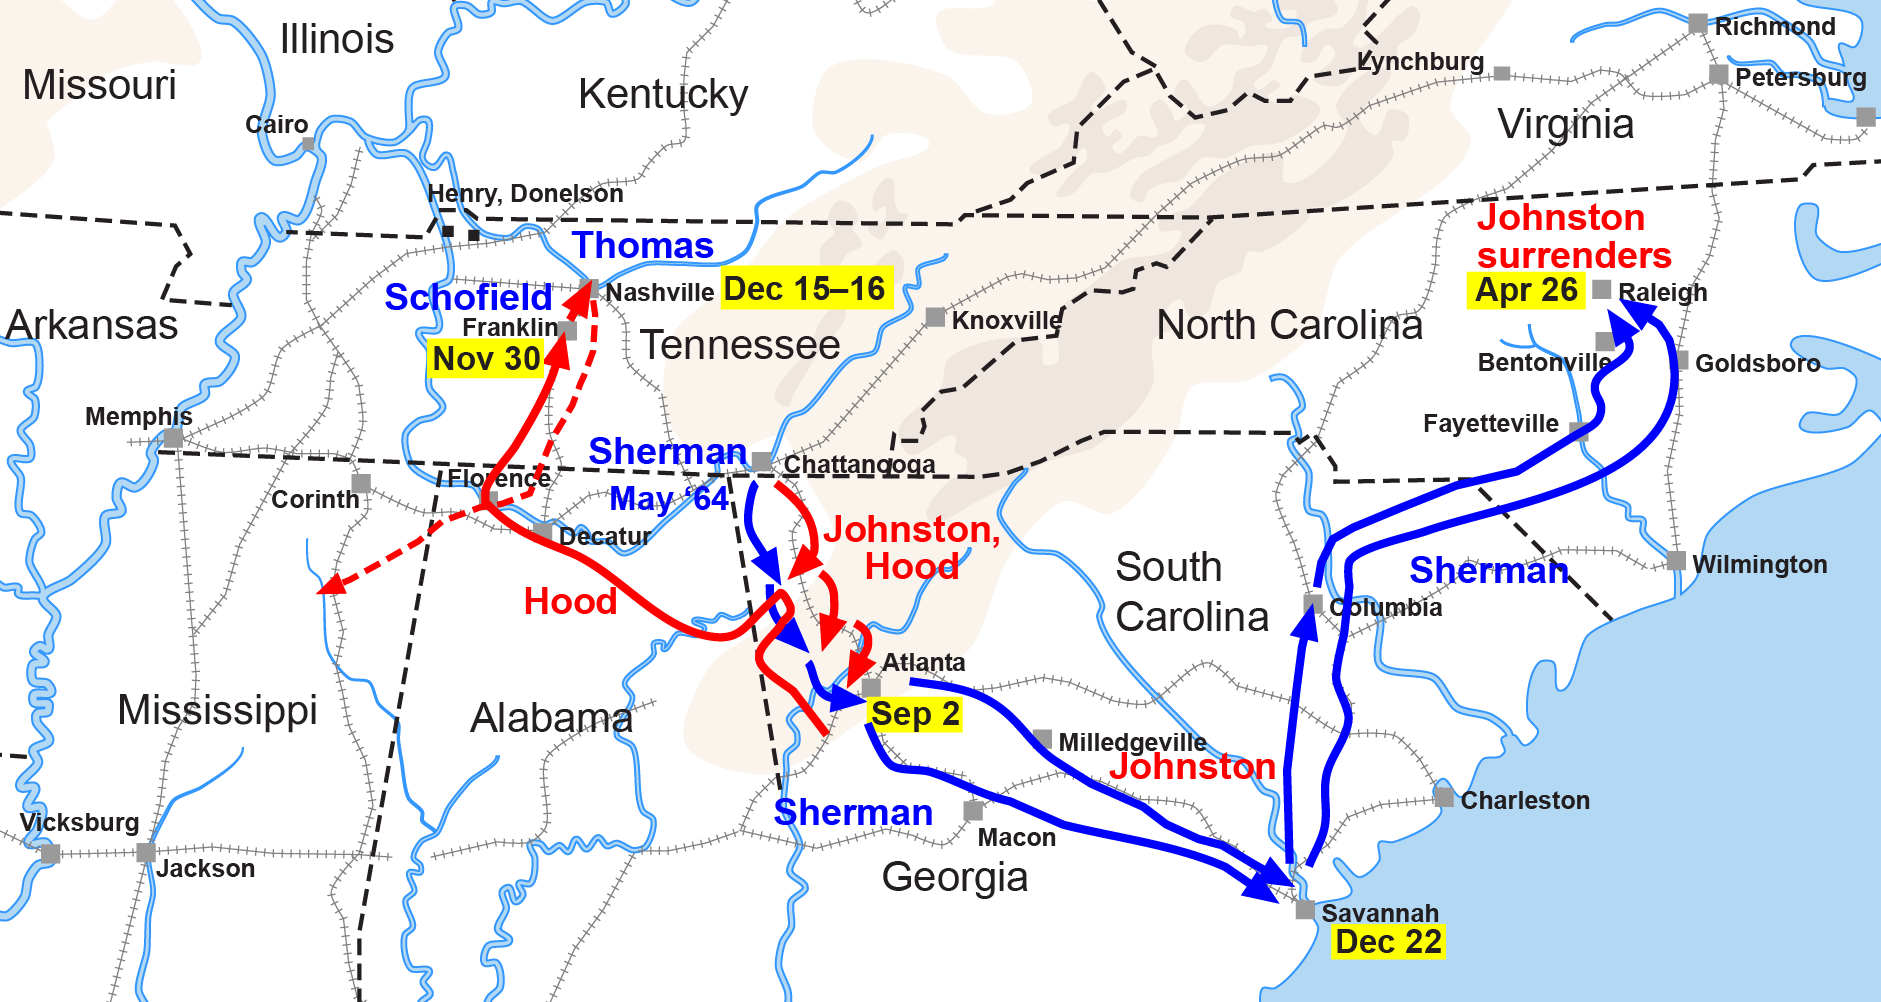 Sherman's March to Sea began in Atlanta in November 1864 and ... on atlanta campaign map, george b. mcclellan, confederate states of america, bleeding kansas map, pickett's charge map, battle of fredericksburg map, battle of antietam map, james longstreet, gettysburg campaign map, american civil war, battle of perryville map, battle of nashville map, battle of atlanta map, jefferson davis, vicksburg campaign map, anaconda plan map, battle of shiloh, battle of fort sumter, fort sumter map, philip sheridan, appomattox court house map, battle of resaca map, george meade, battle of gettysburg, ambrose burnside, george armstrong custer, morgan's raid map, battle of vicksburg, ulysses s. grant, battle of antietam, stonewall jackson, robert e. lee, second battle of bull run map, chattanooga campaign map, battle of olustee map, american civil war map, first battle of bull run, george pickett,